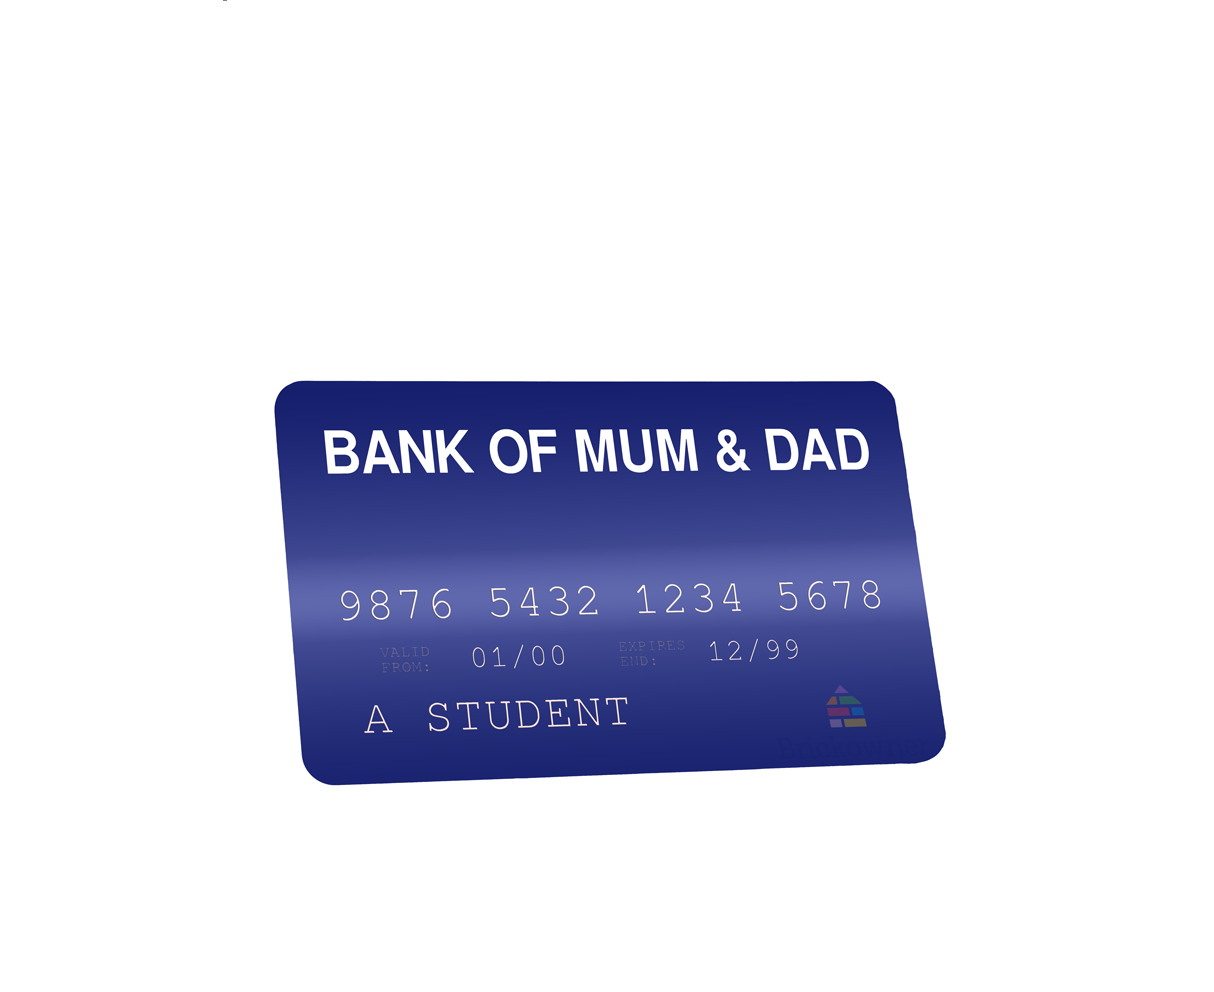 The Bank of Mum and Dad Part 2